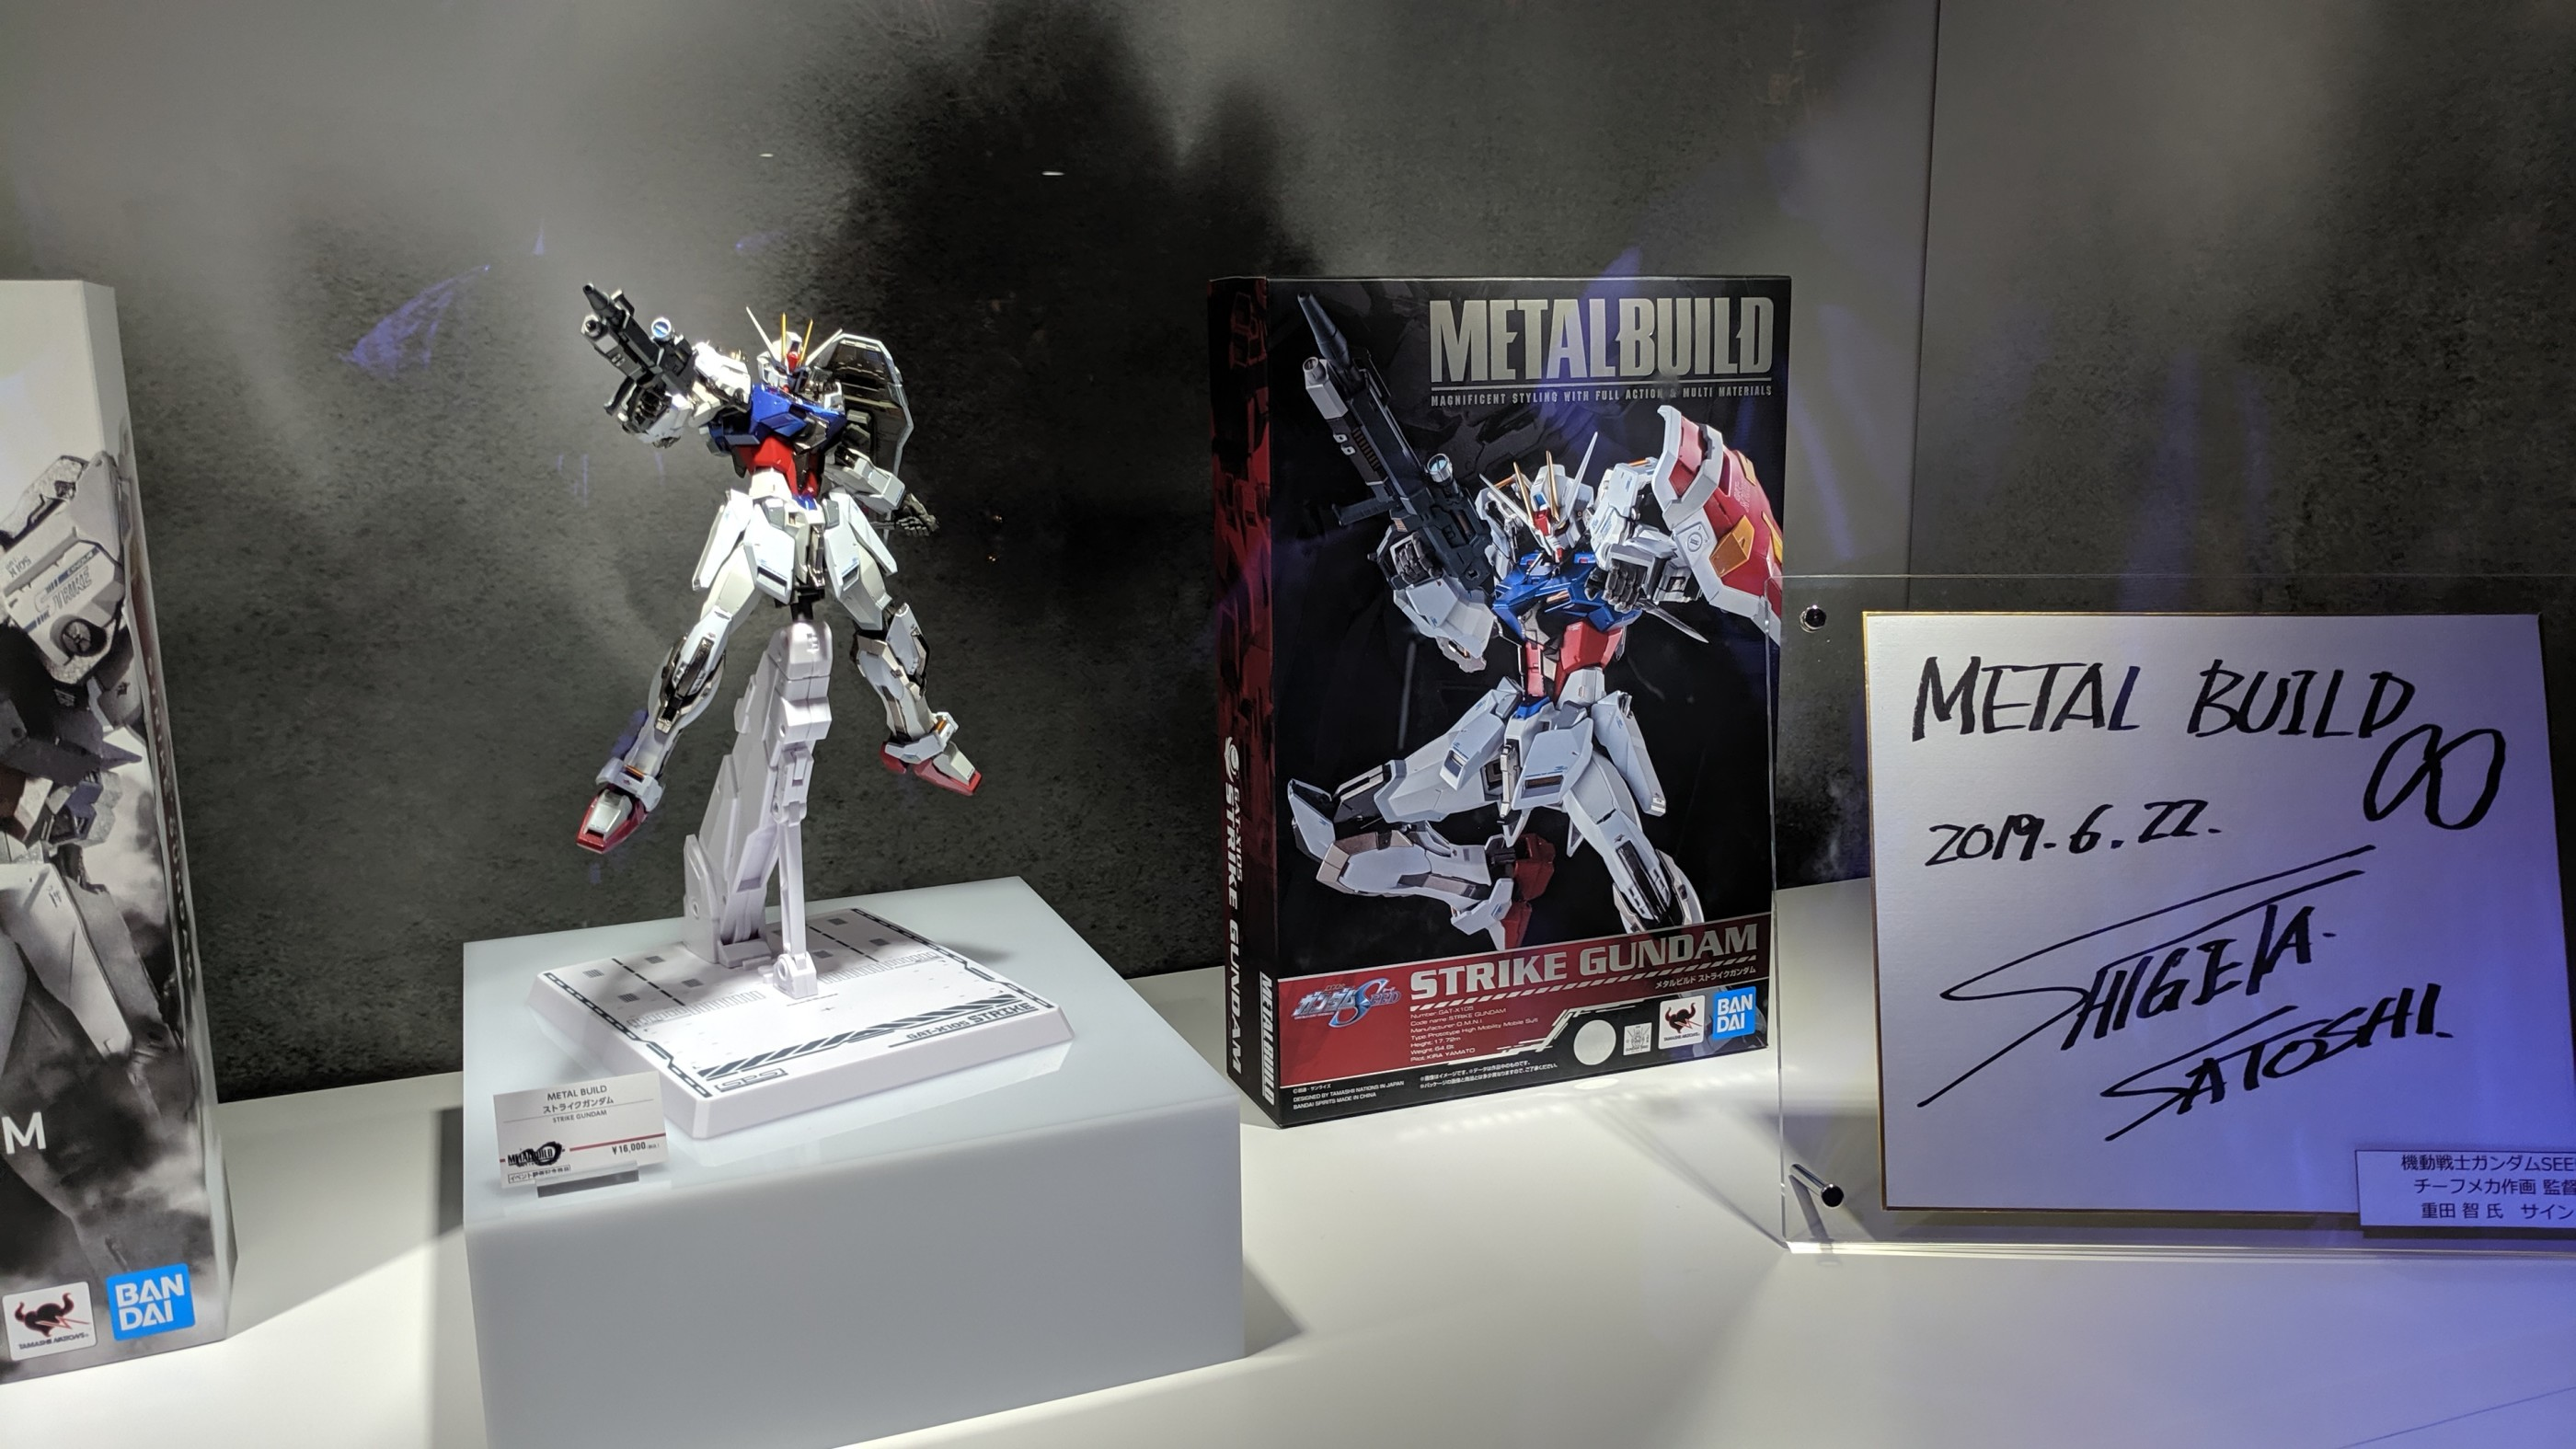 Metal Build's Gundam figures are highly prized and highly priced